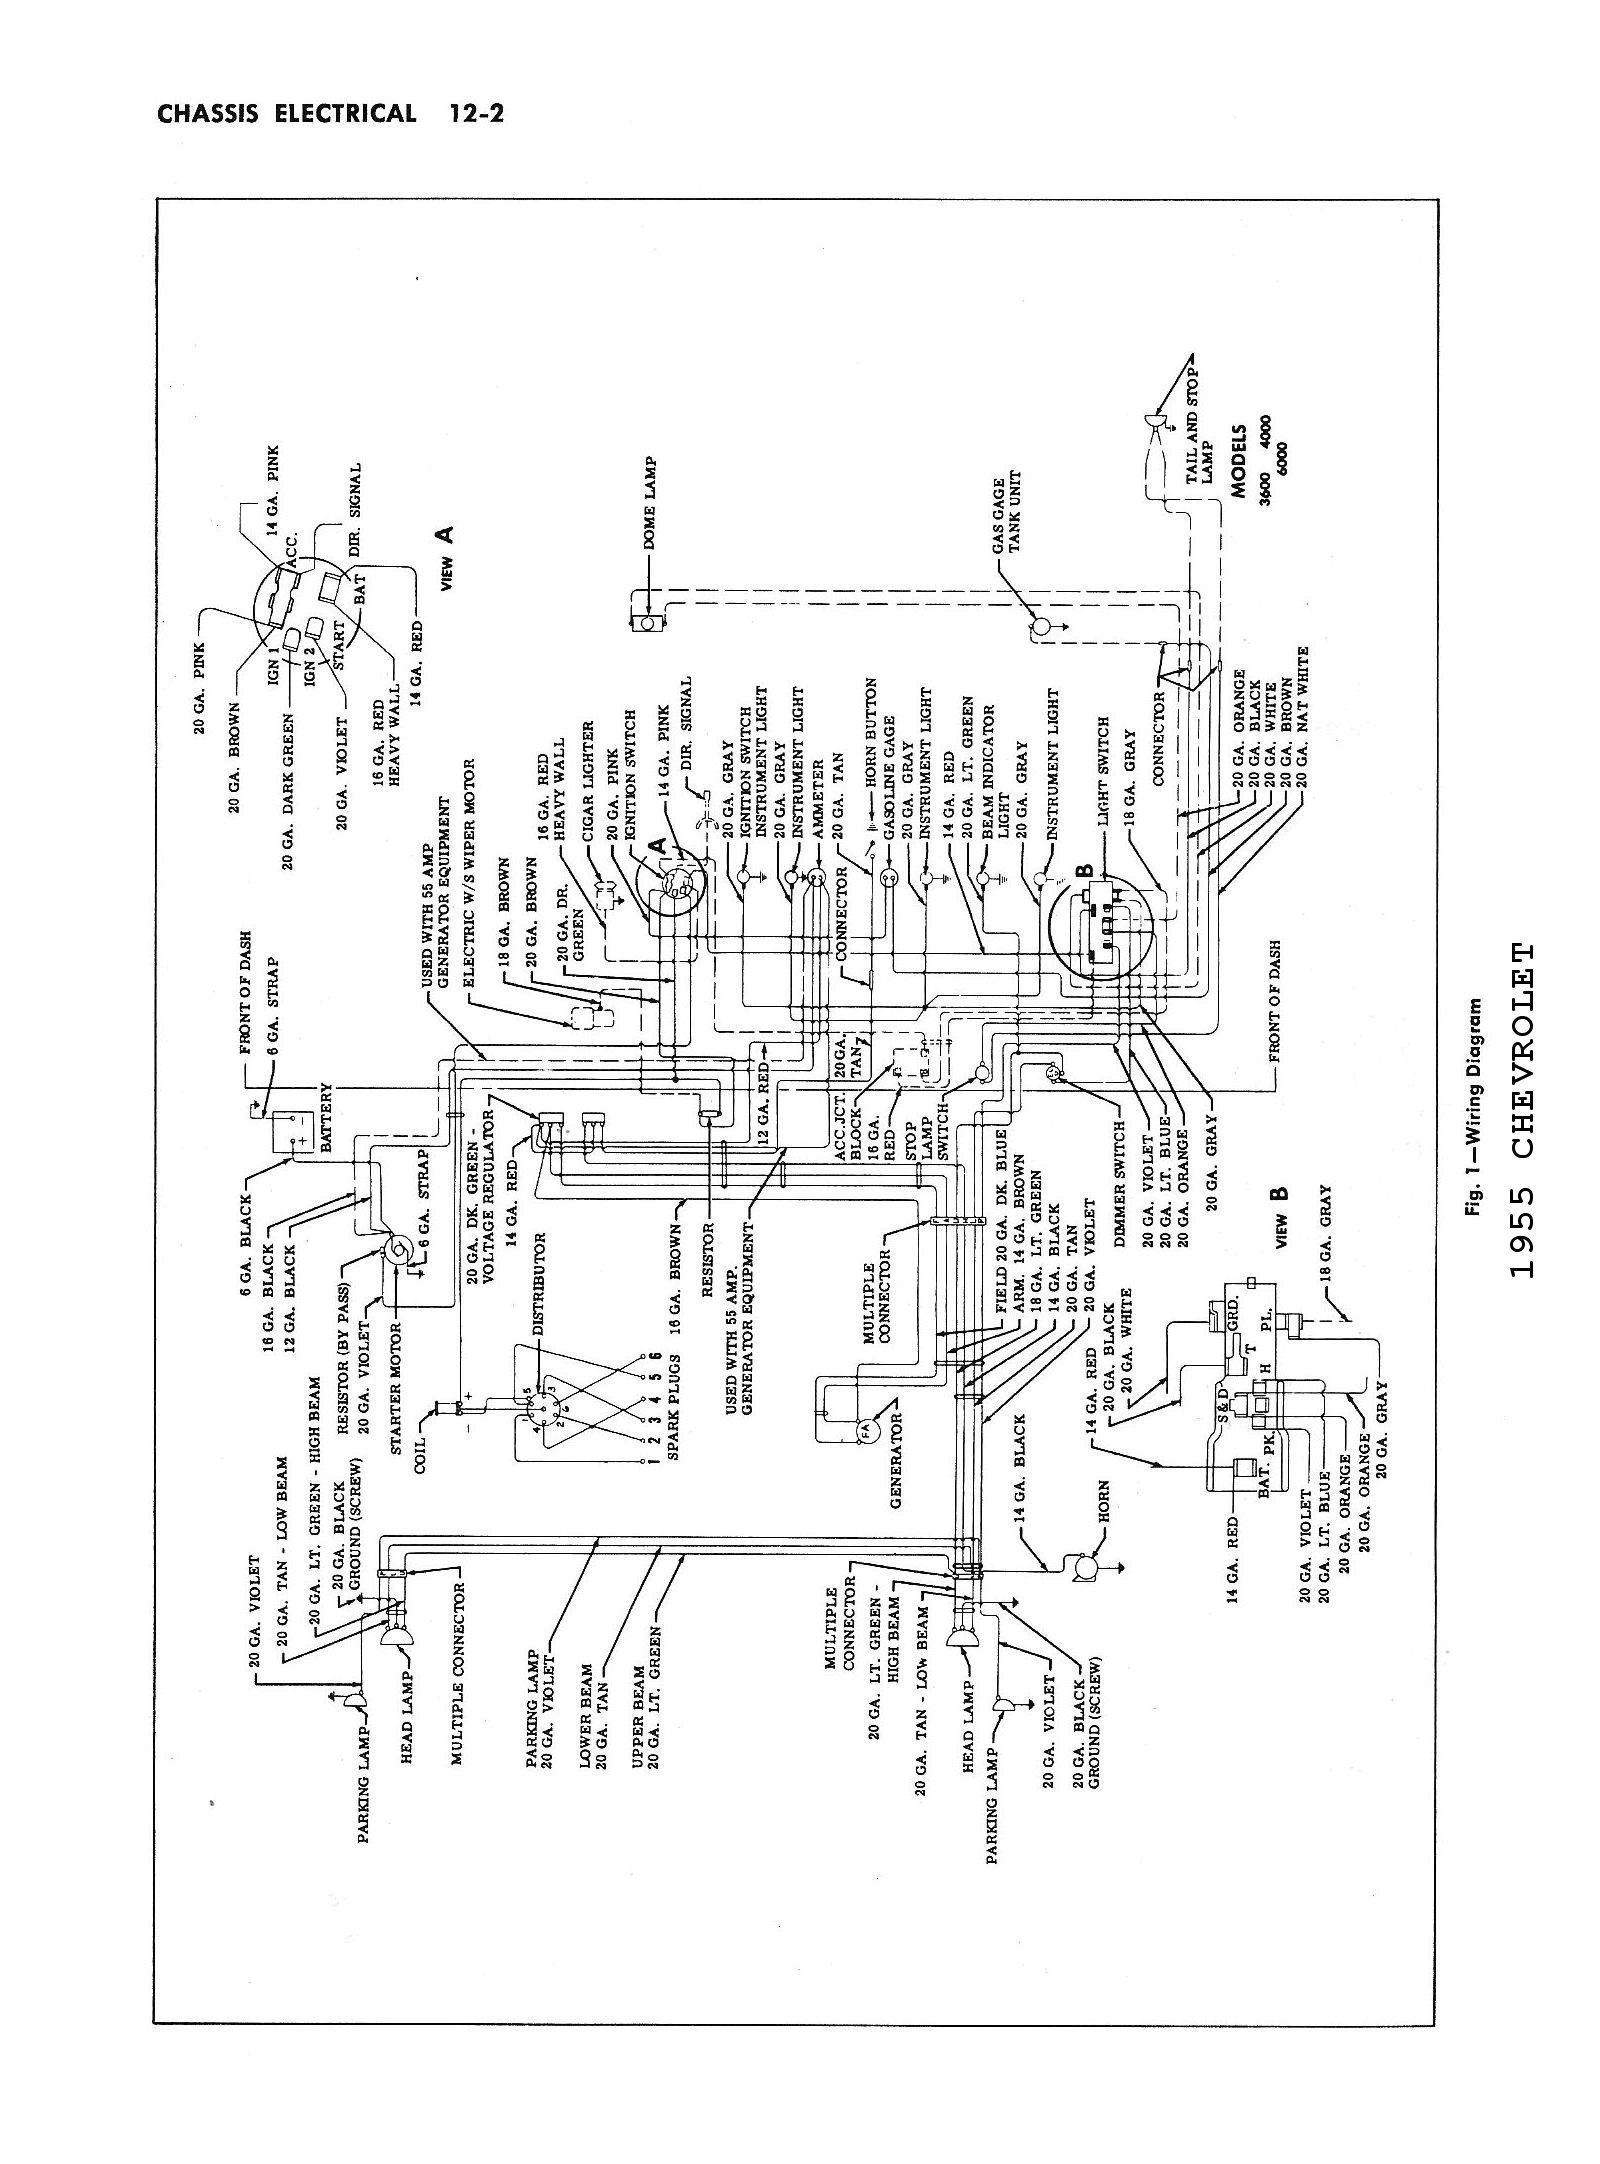 hight resolution of 1957 chevrolet wiring diagram wiring diagram 1956 international pickup